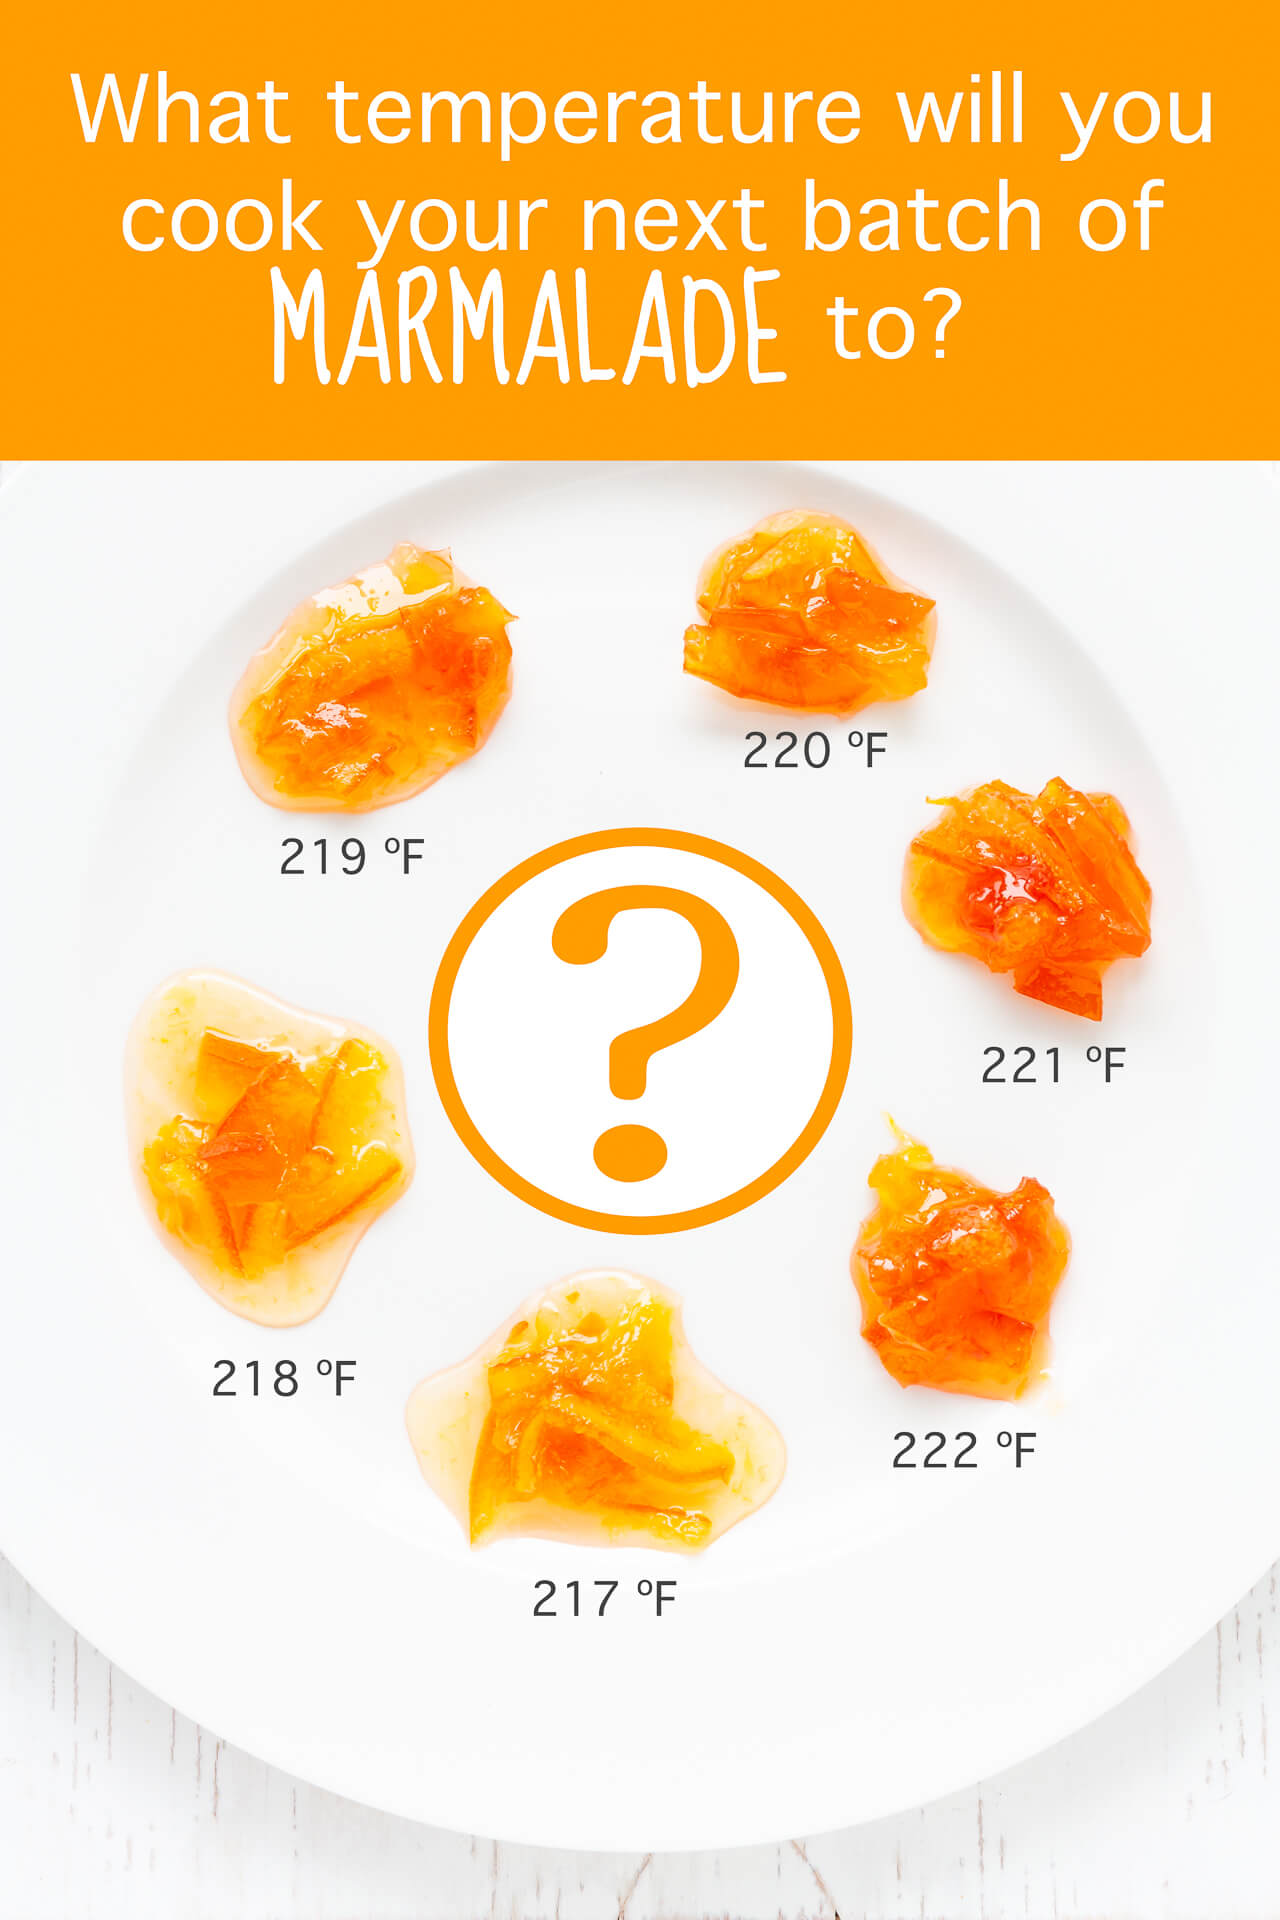 a palette of orange marmalades with varying thickness and set, some runnier others thicker, to show impact of cooking temperature on marmalade set